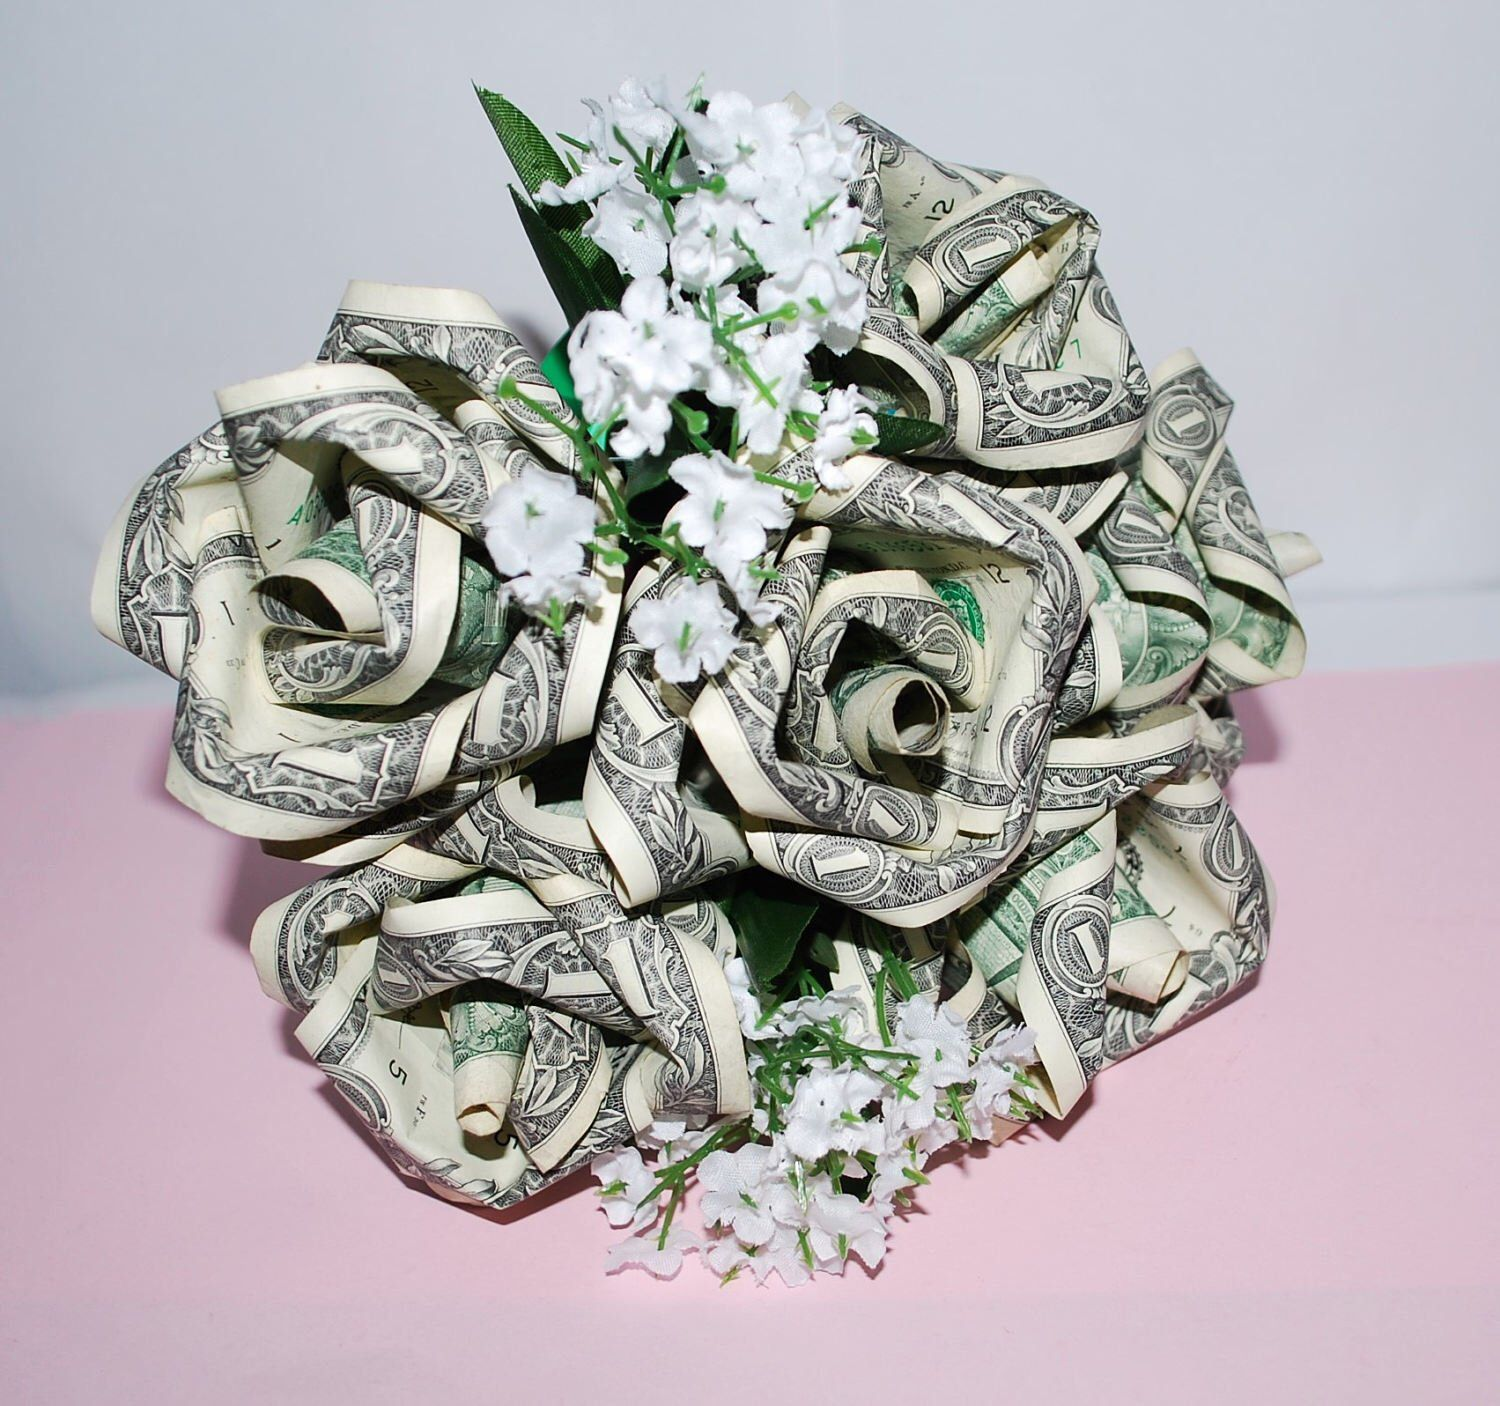 Money roses money flower bouquet rose bouquet origami roses excited to share this item from my etsy shop money roses money flower bouquet rose bouquet origami roses dollar flowers us dollar bills flower izmirmasajfo